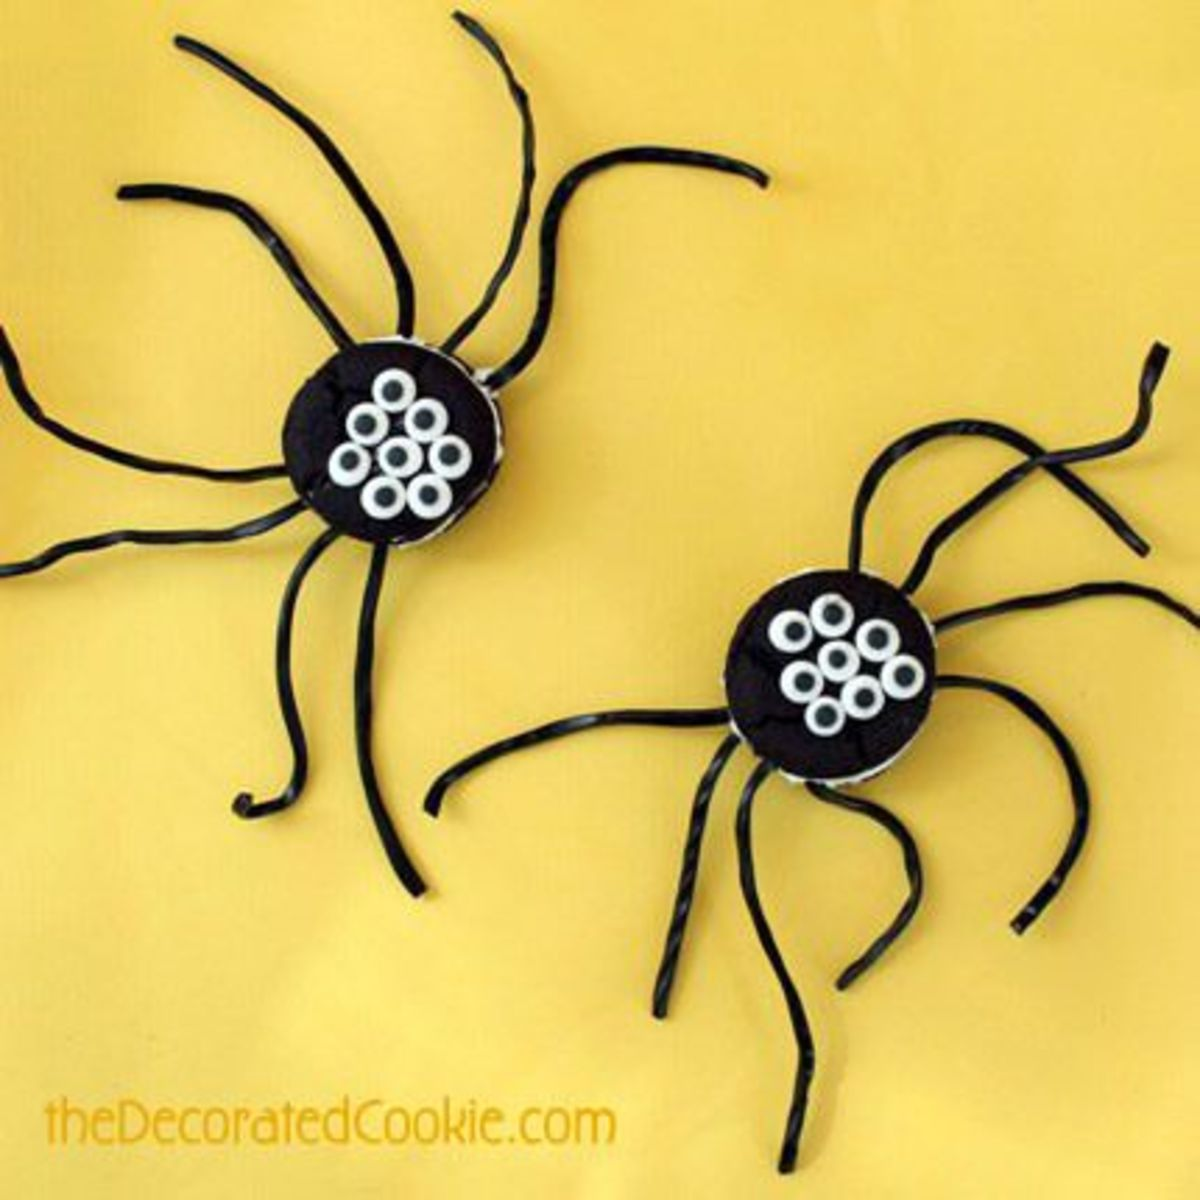 Oreo Cakester Spiders from The Decorated Cookie blog's guest post on CraftGossip.com